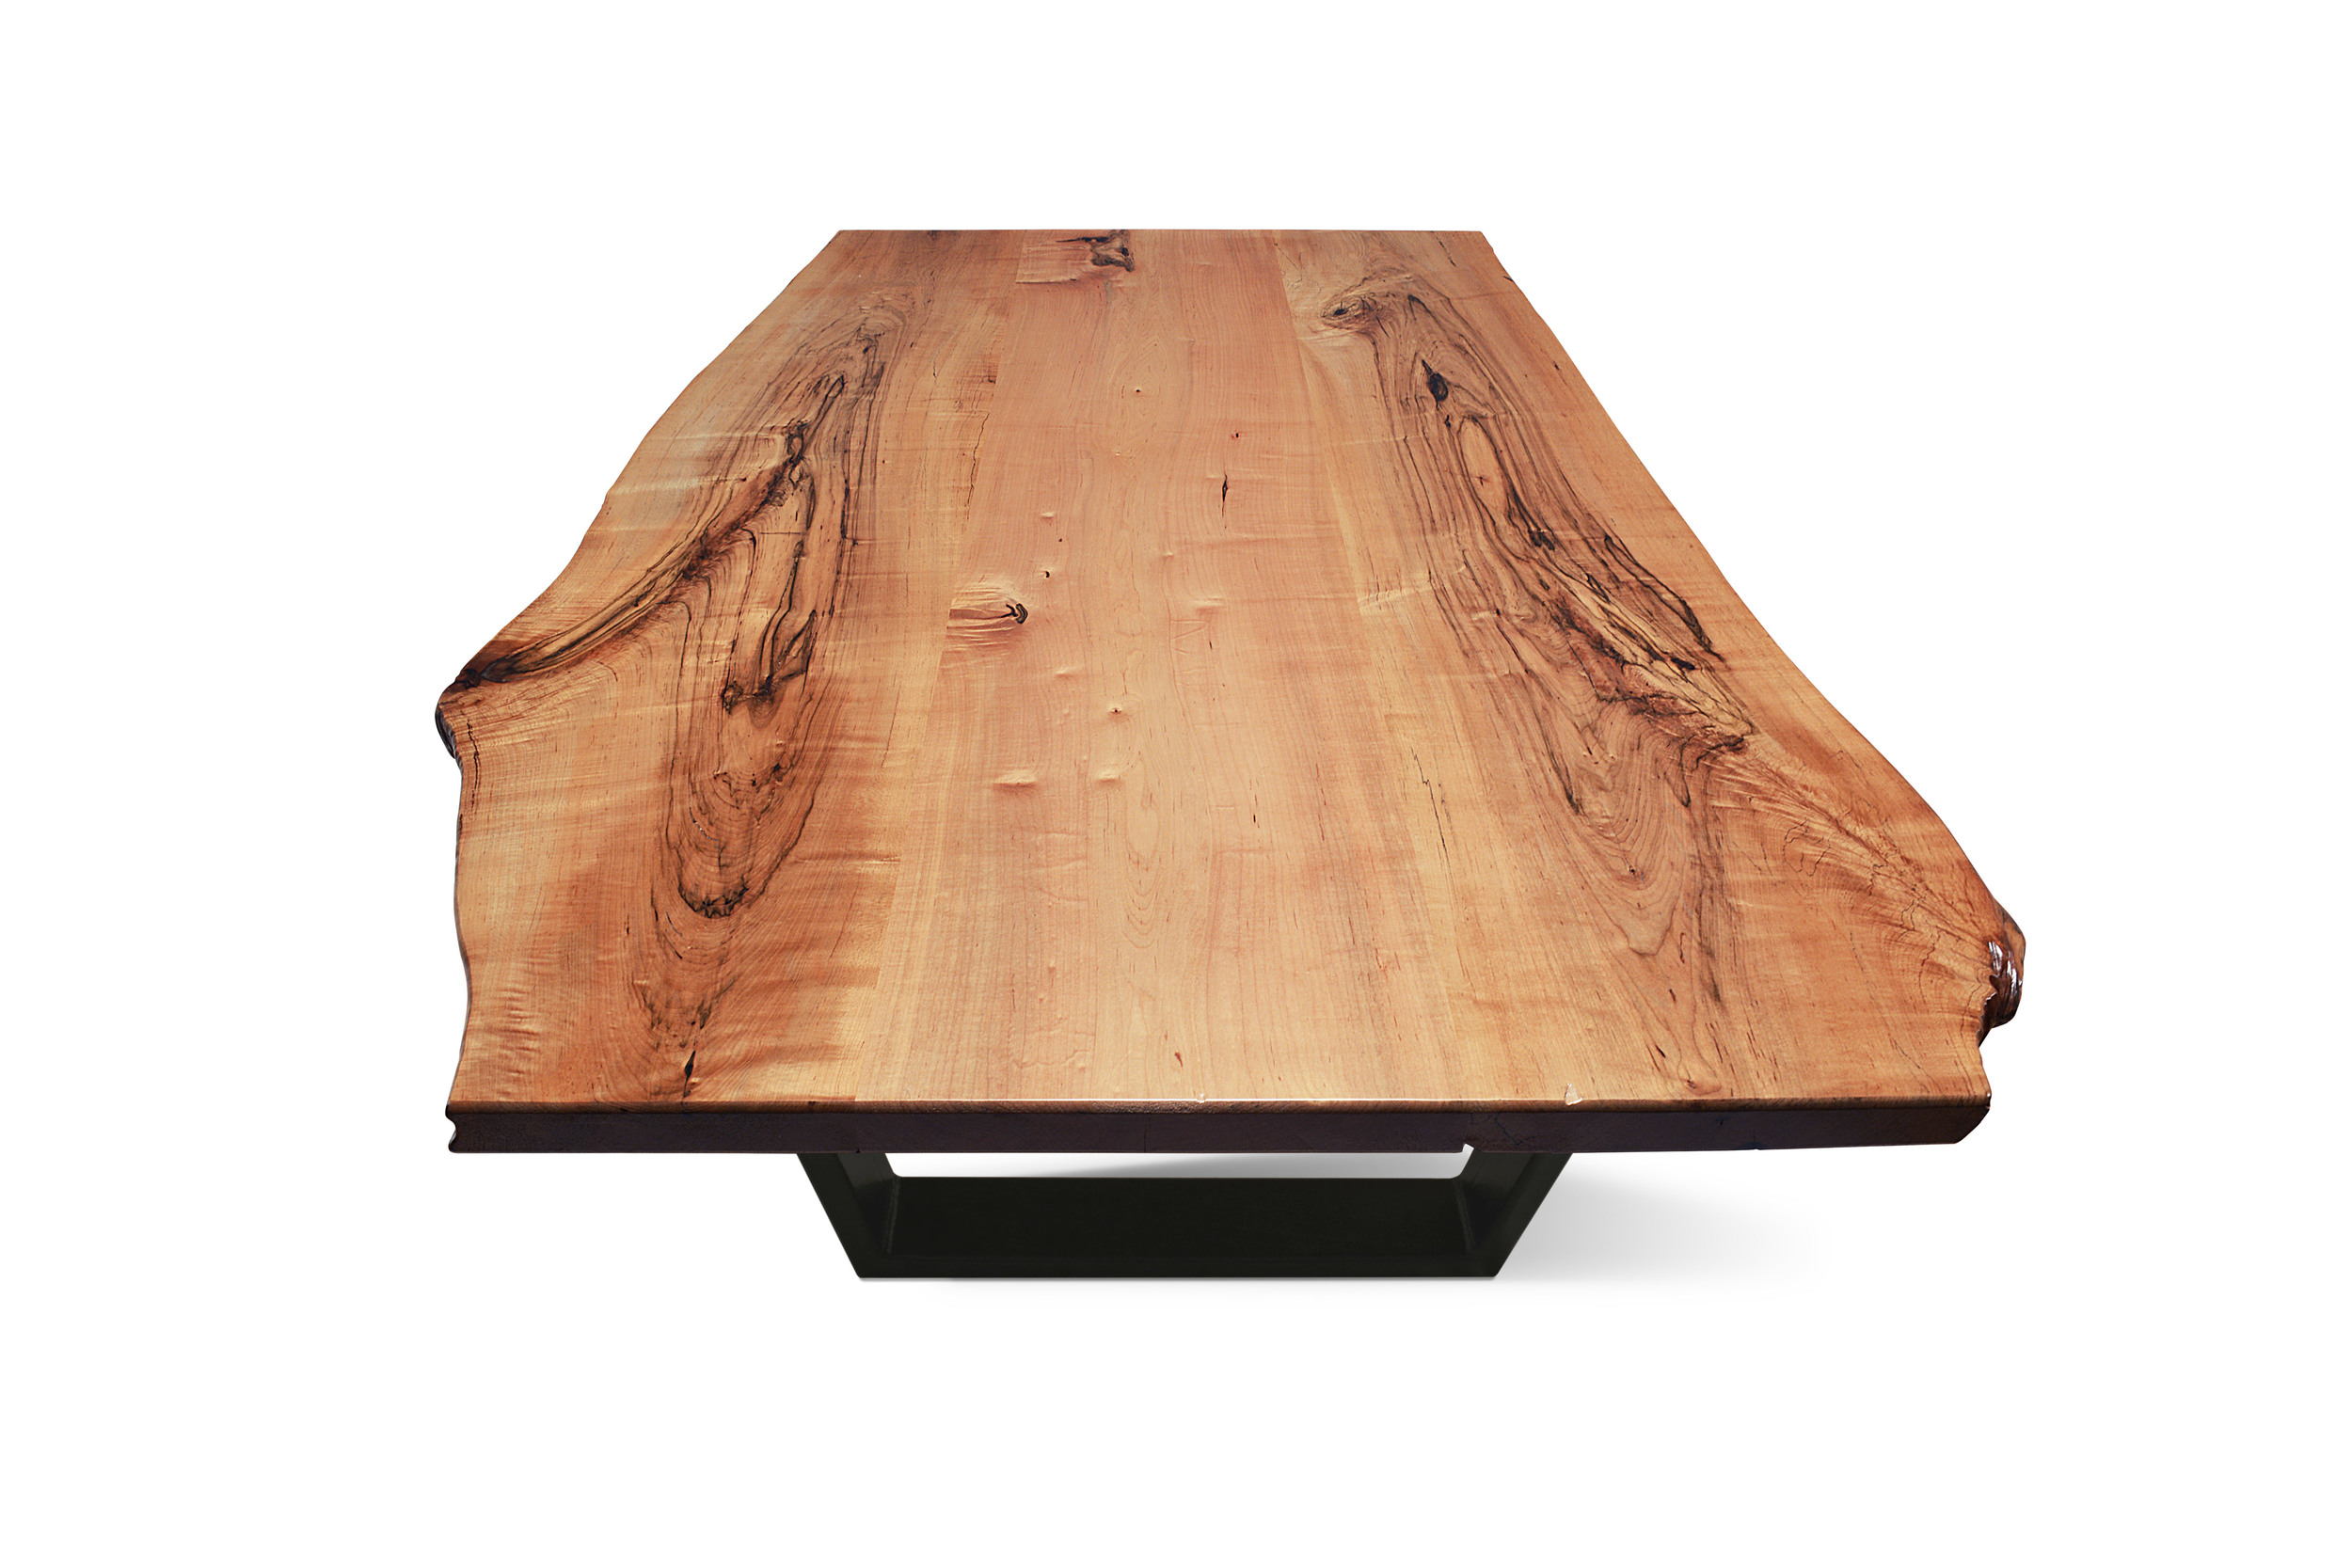 Etz & Steel Kona Live Edge Table Black Base 7.jpg